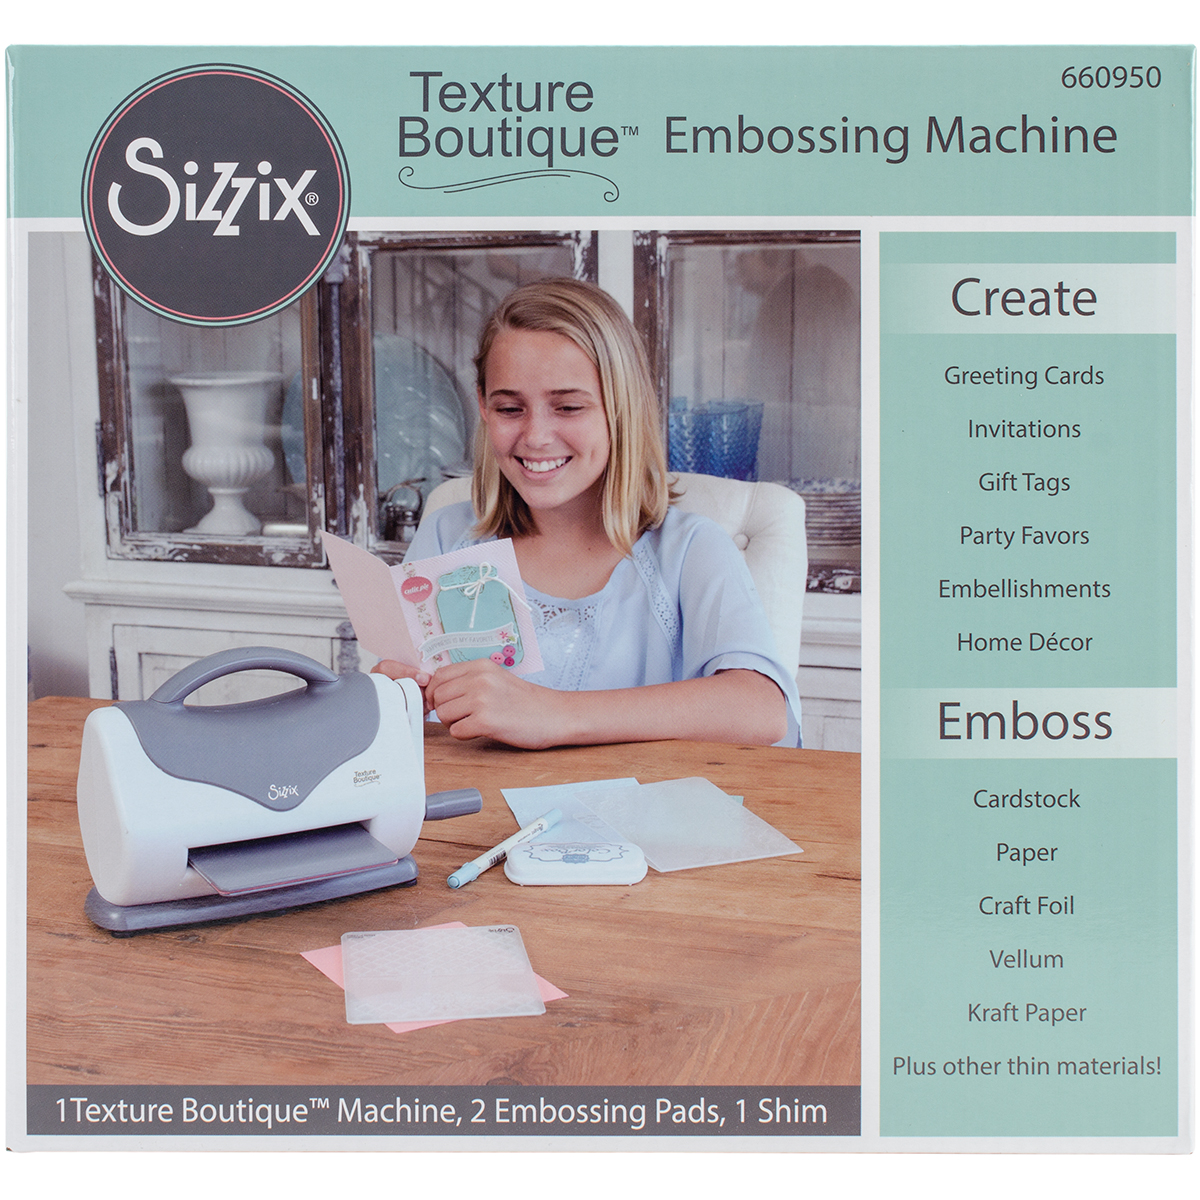 Sizzix Texture Boutique Embossing Machine Gray & White